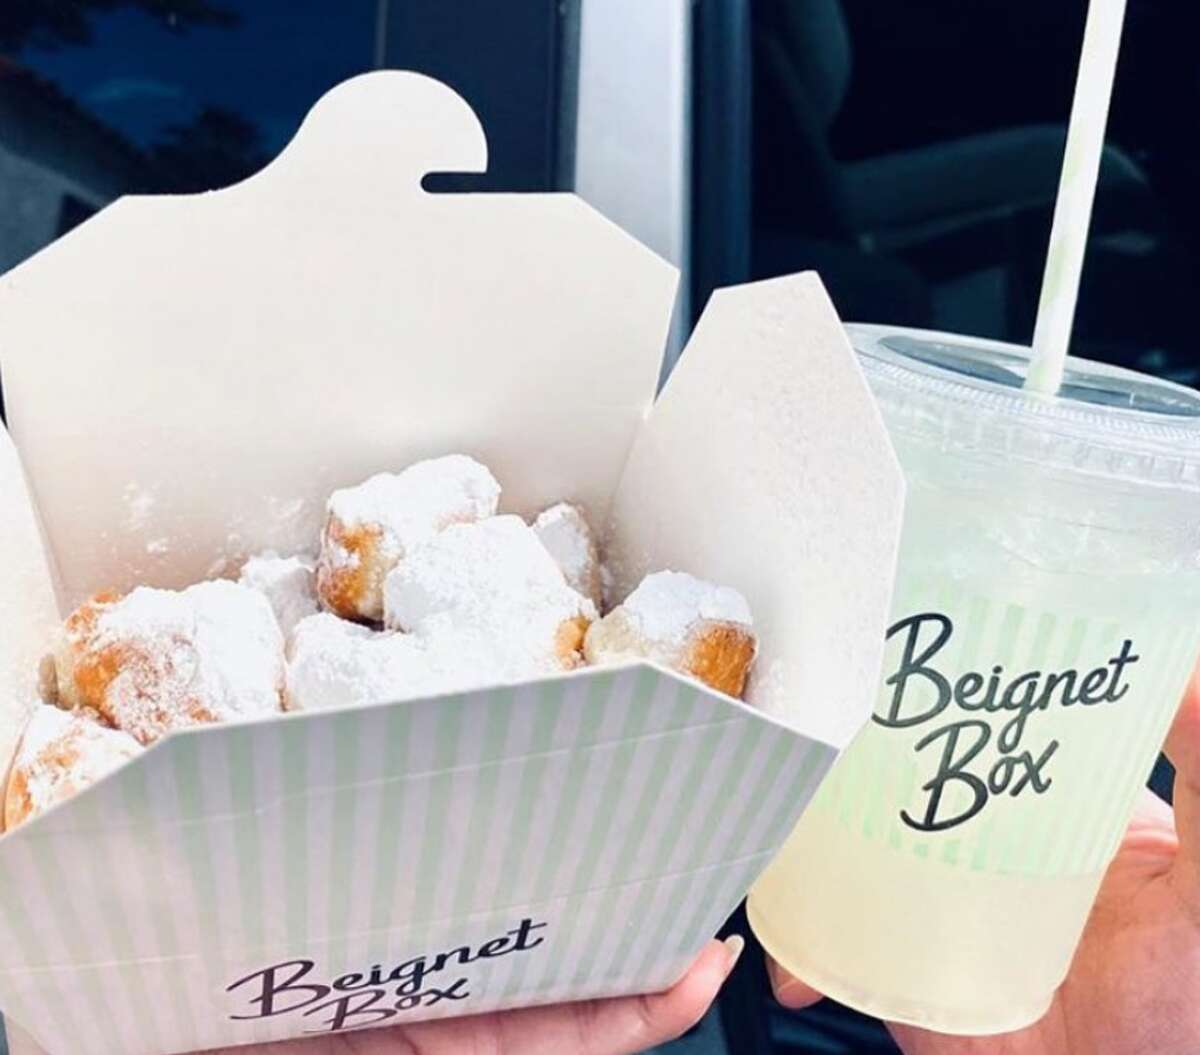 San Antonio's food scene is getting the star treatment next week, when singer and actor Christina Milian's food truck makes a stop in the Alamo City. Milian. The food truck, known as the Beignet Box, sells beignets, teas, lemonades and coffee.